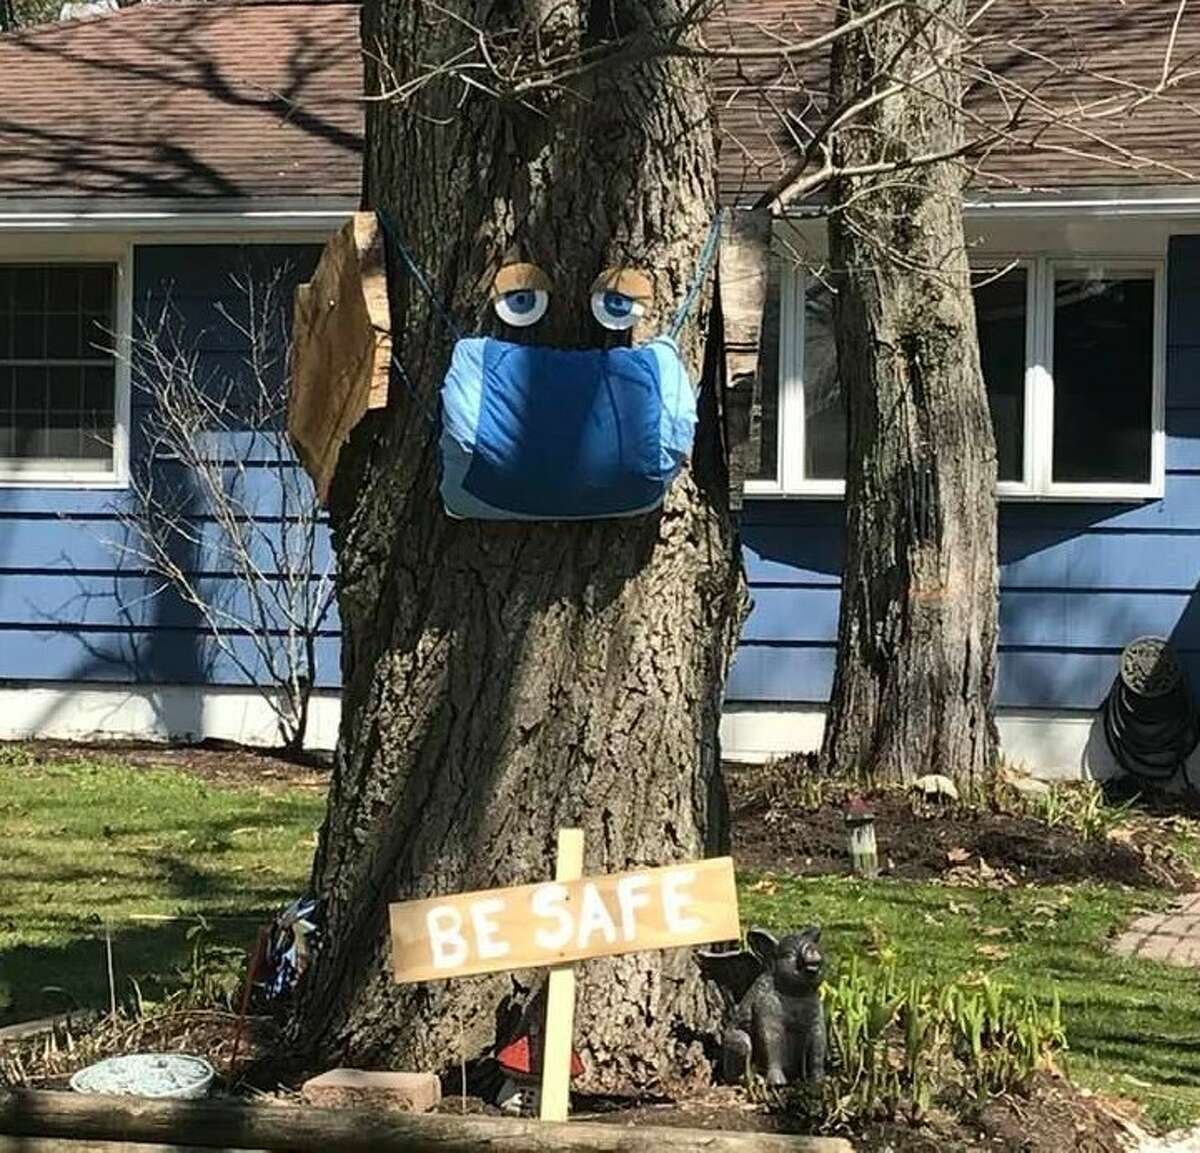 """A house on Julie Mansfield's street in Delmar has this tree in their front yard. """"It certainly made me stop, and smile,"""" she said."""